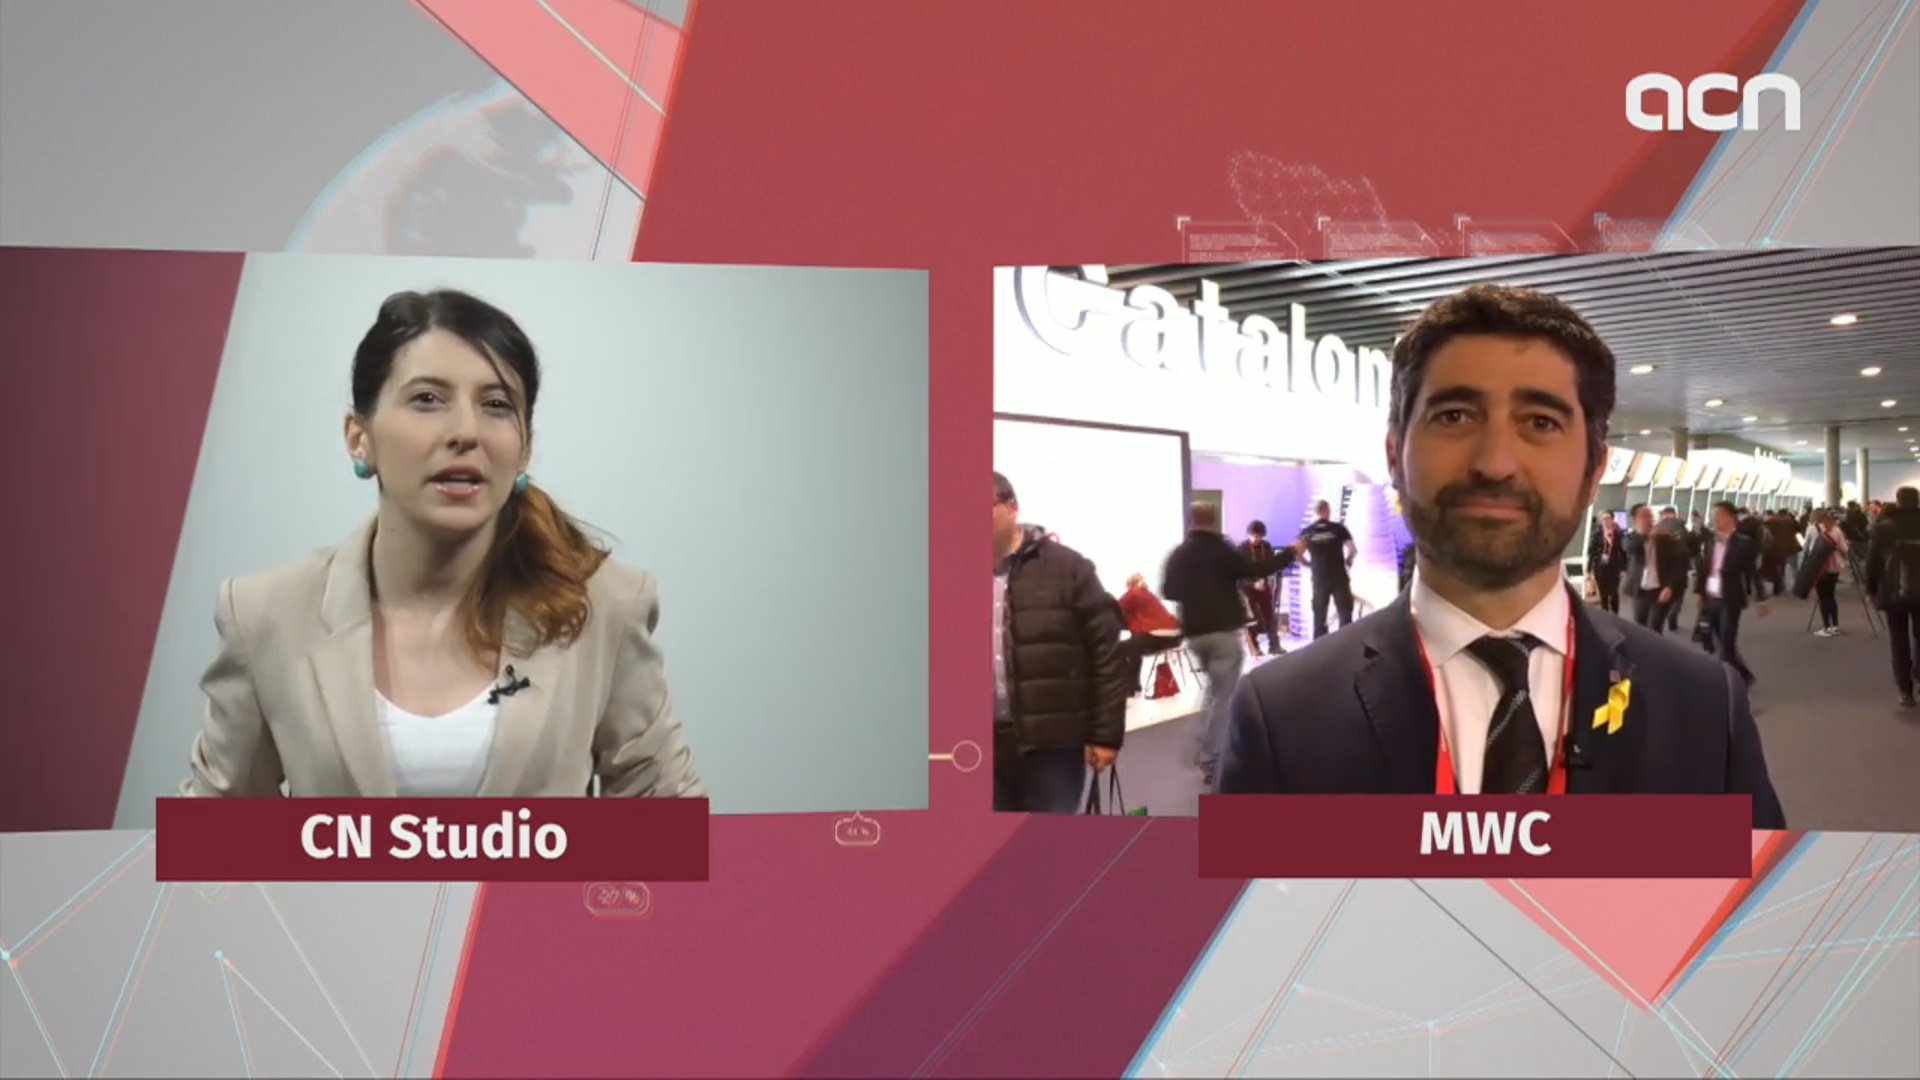 Catalan News interviews Jordi Puigneró, secretary of telecommunications at MWC 2018